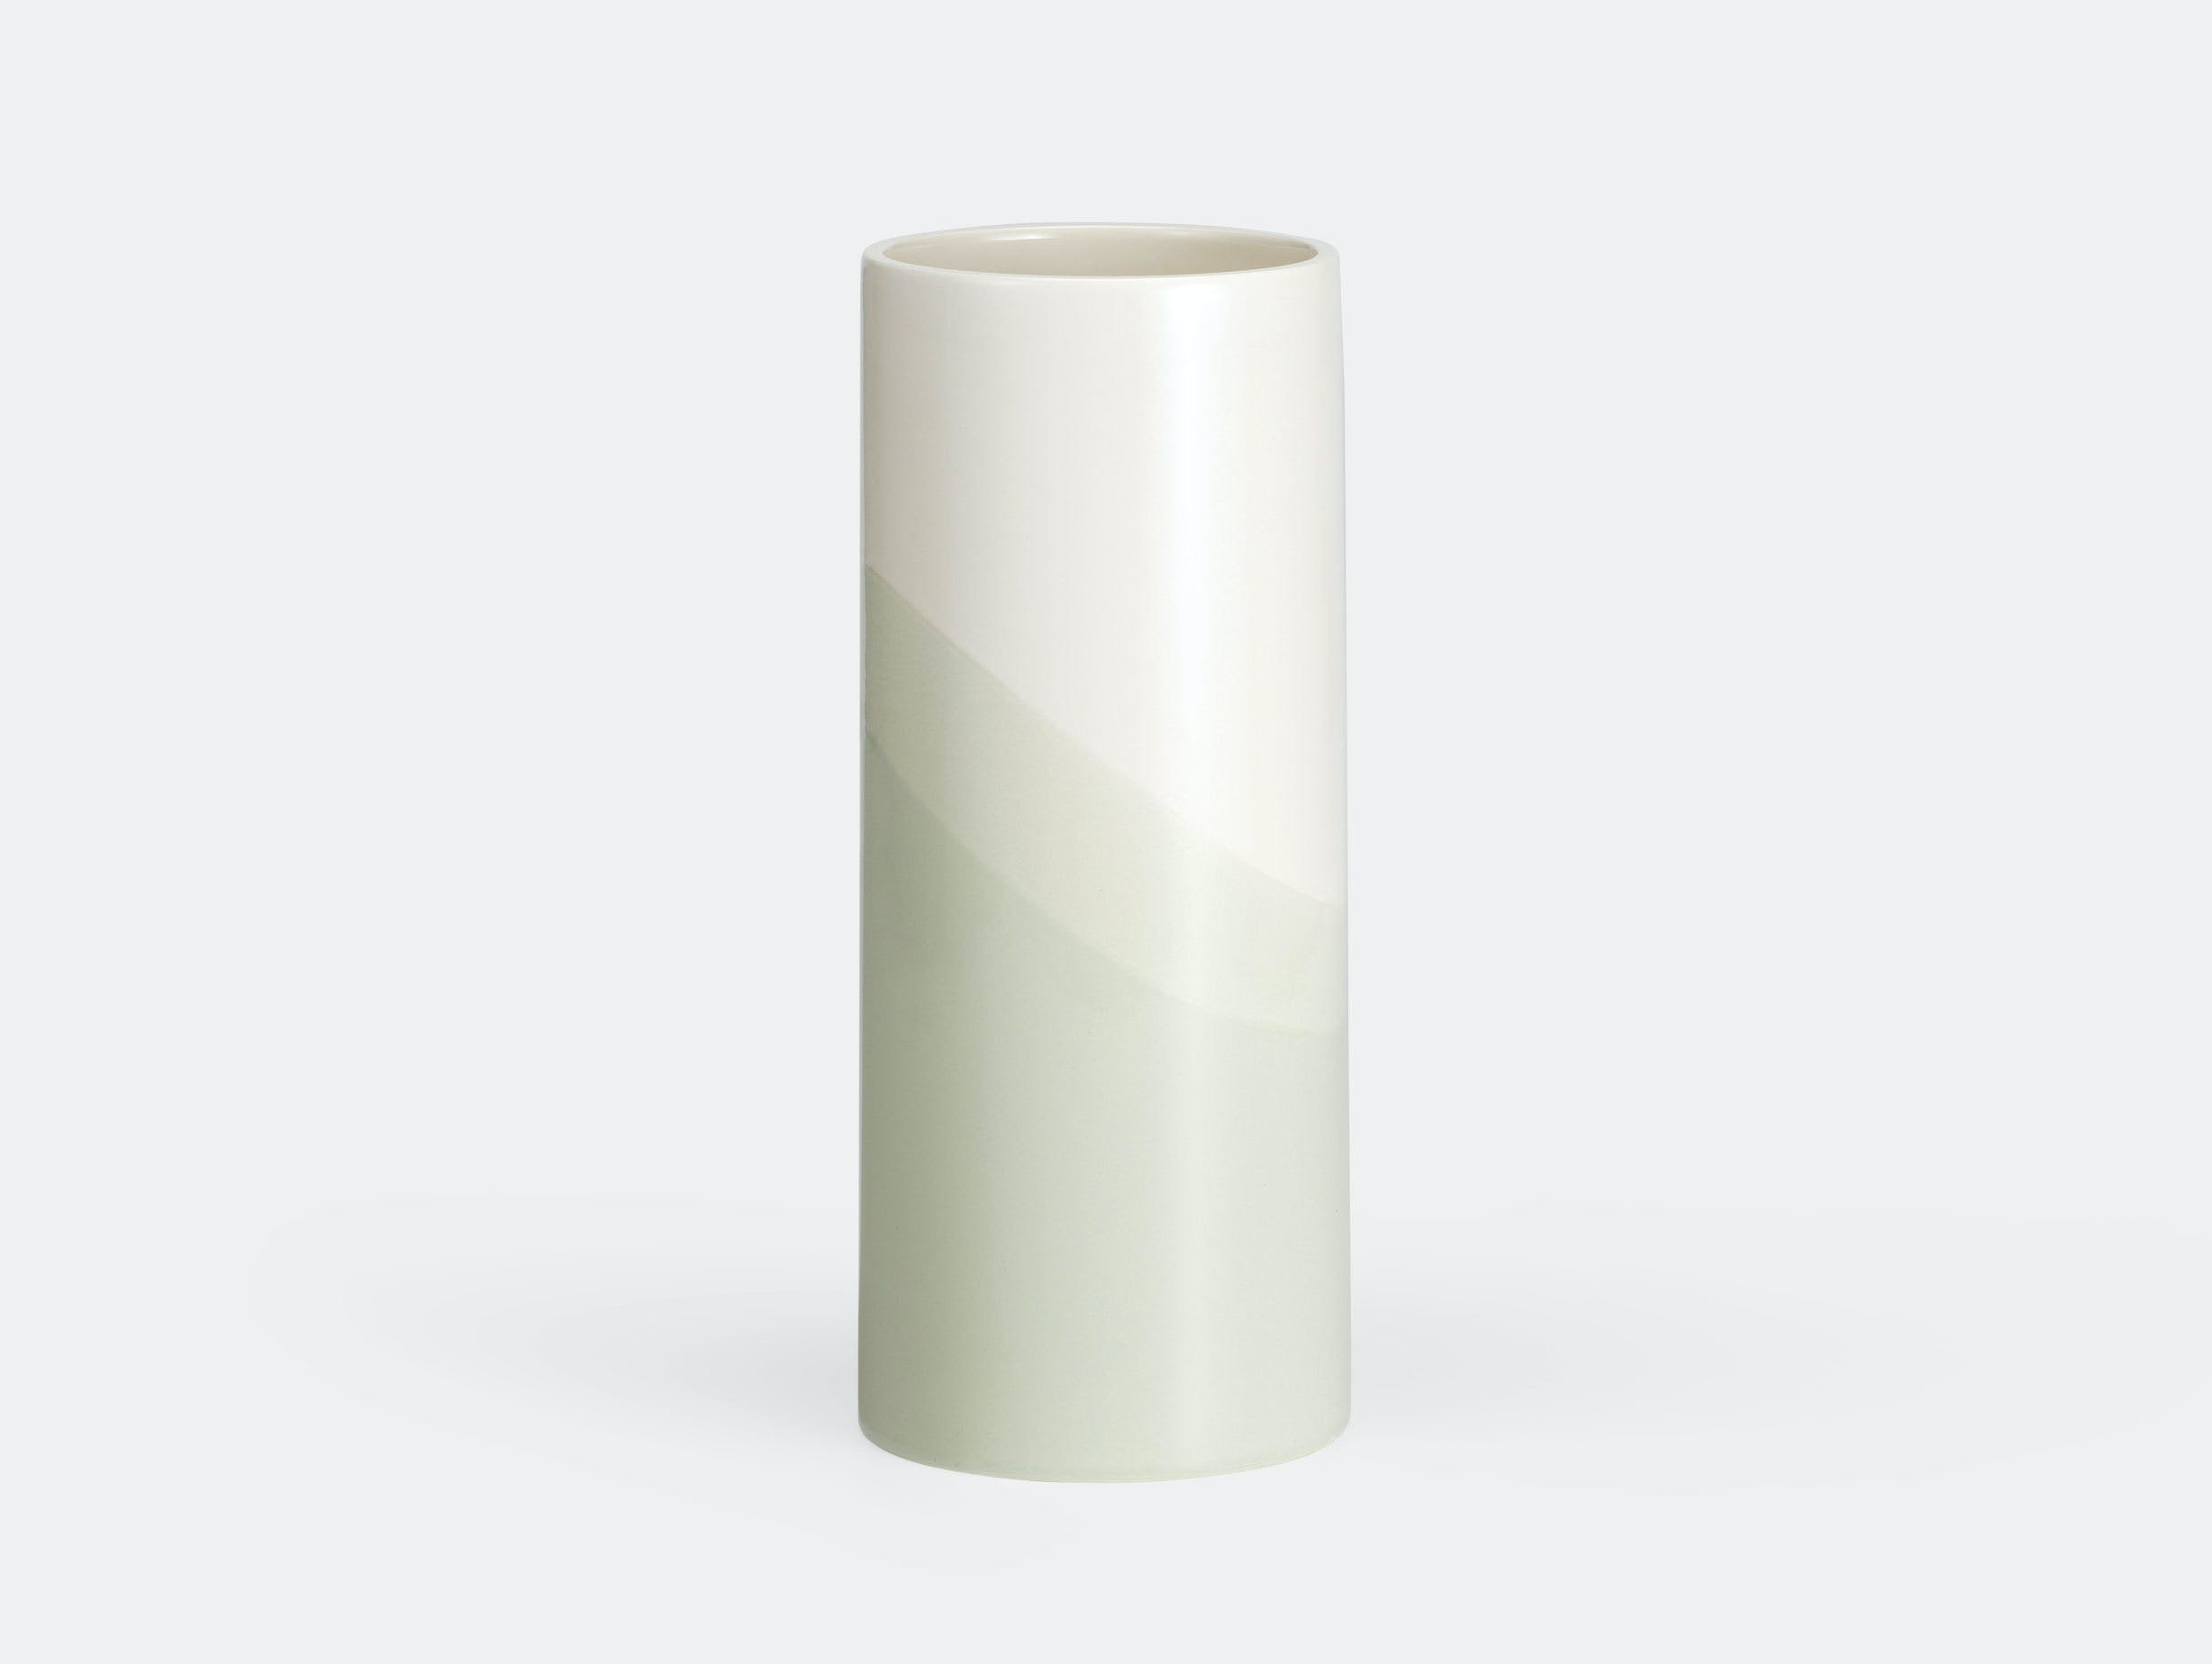 Vitra Herringbone Plain Vase Sand Raw Edges